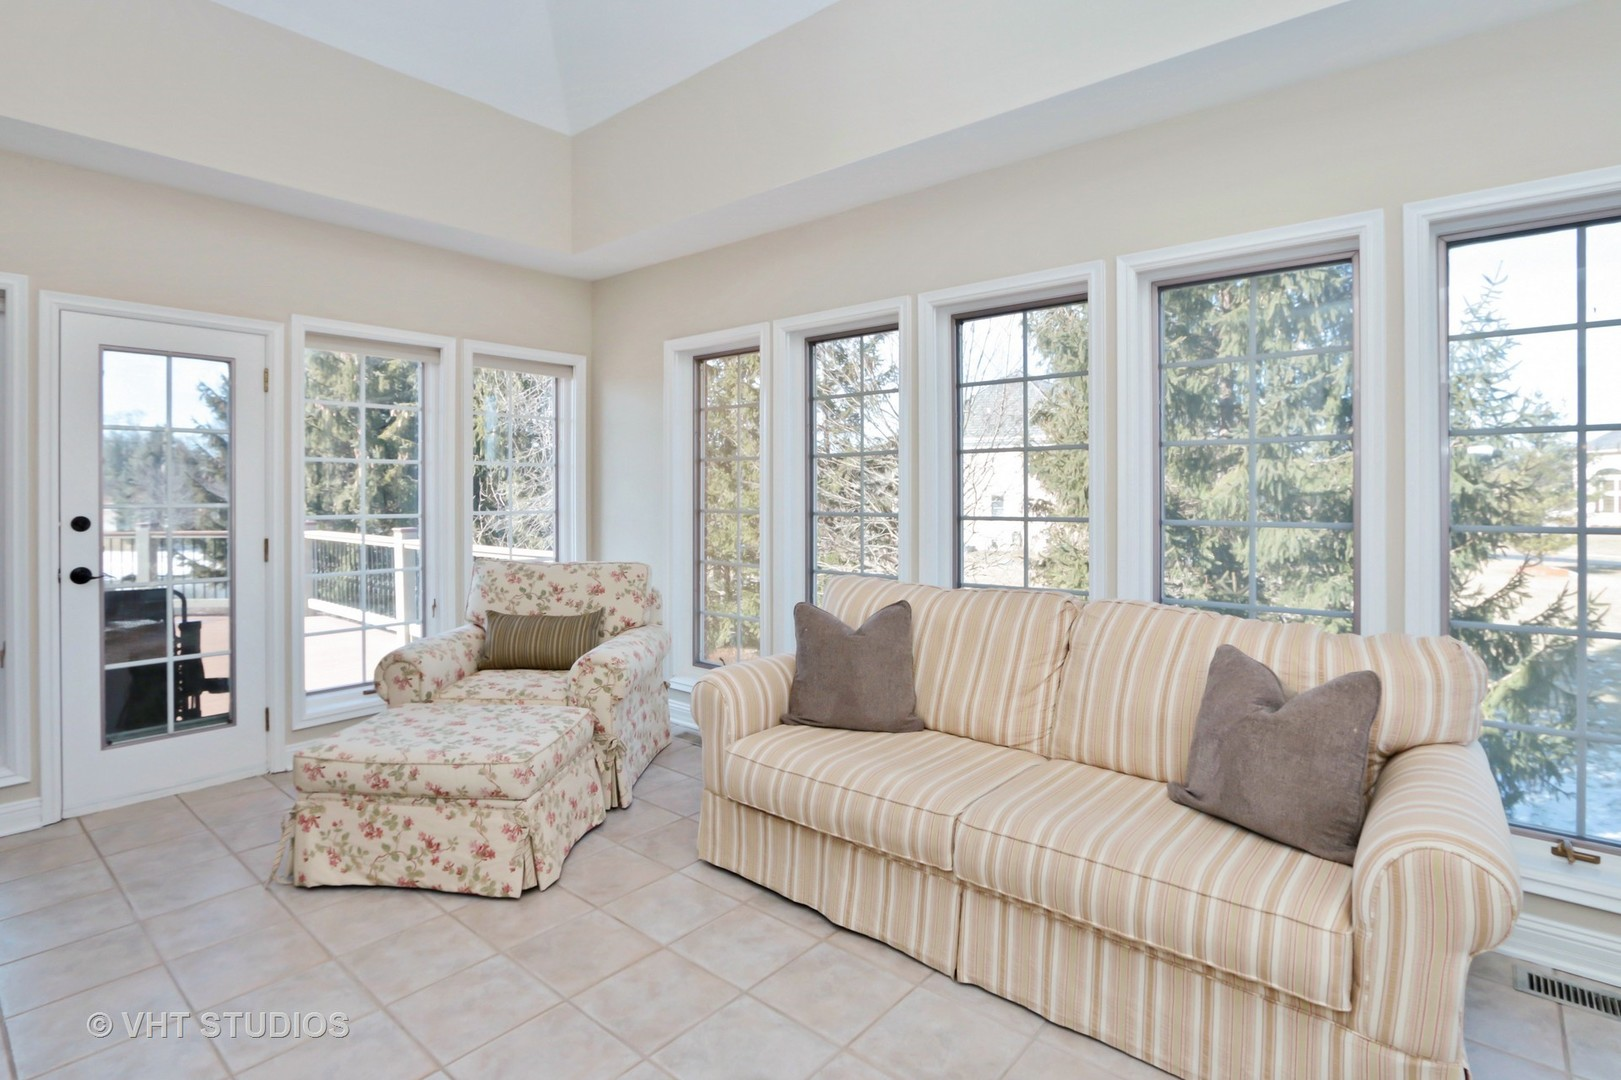 Nice Homes For Sale Hawthorn Woods Il Ideas - Home Decorating Ideas ...